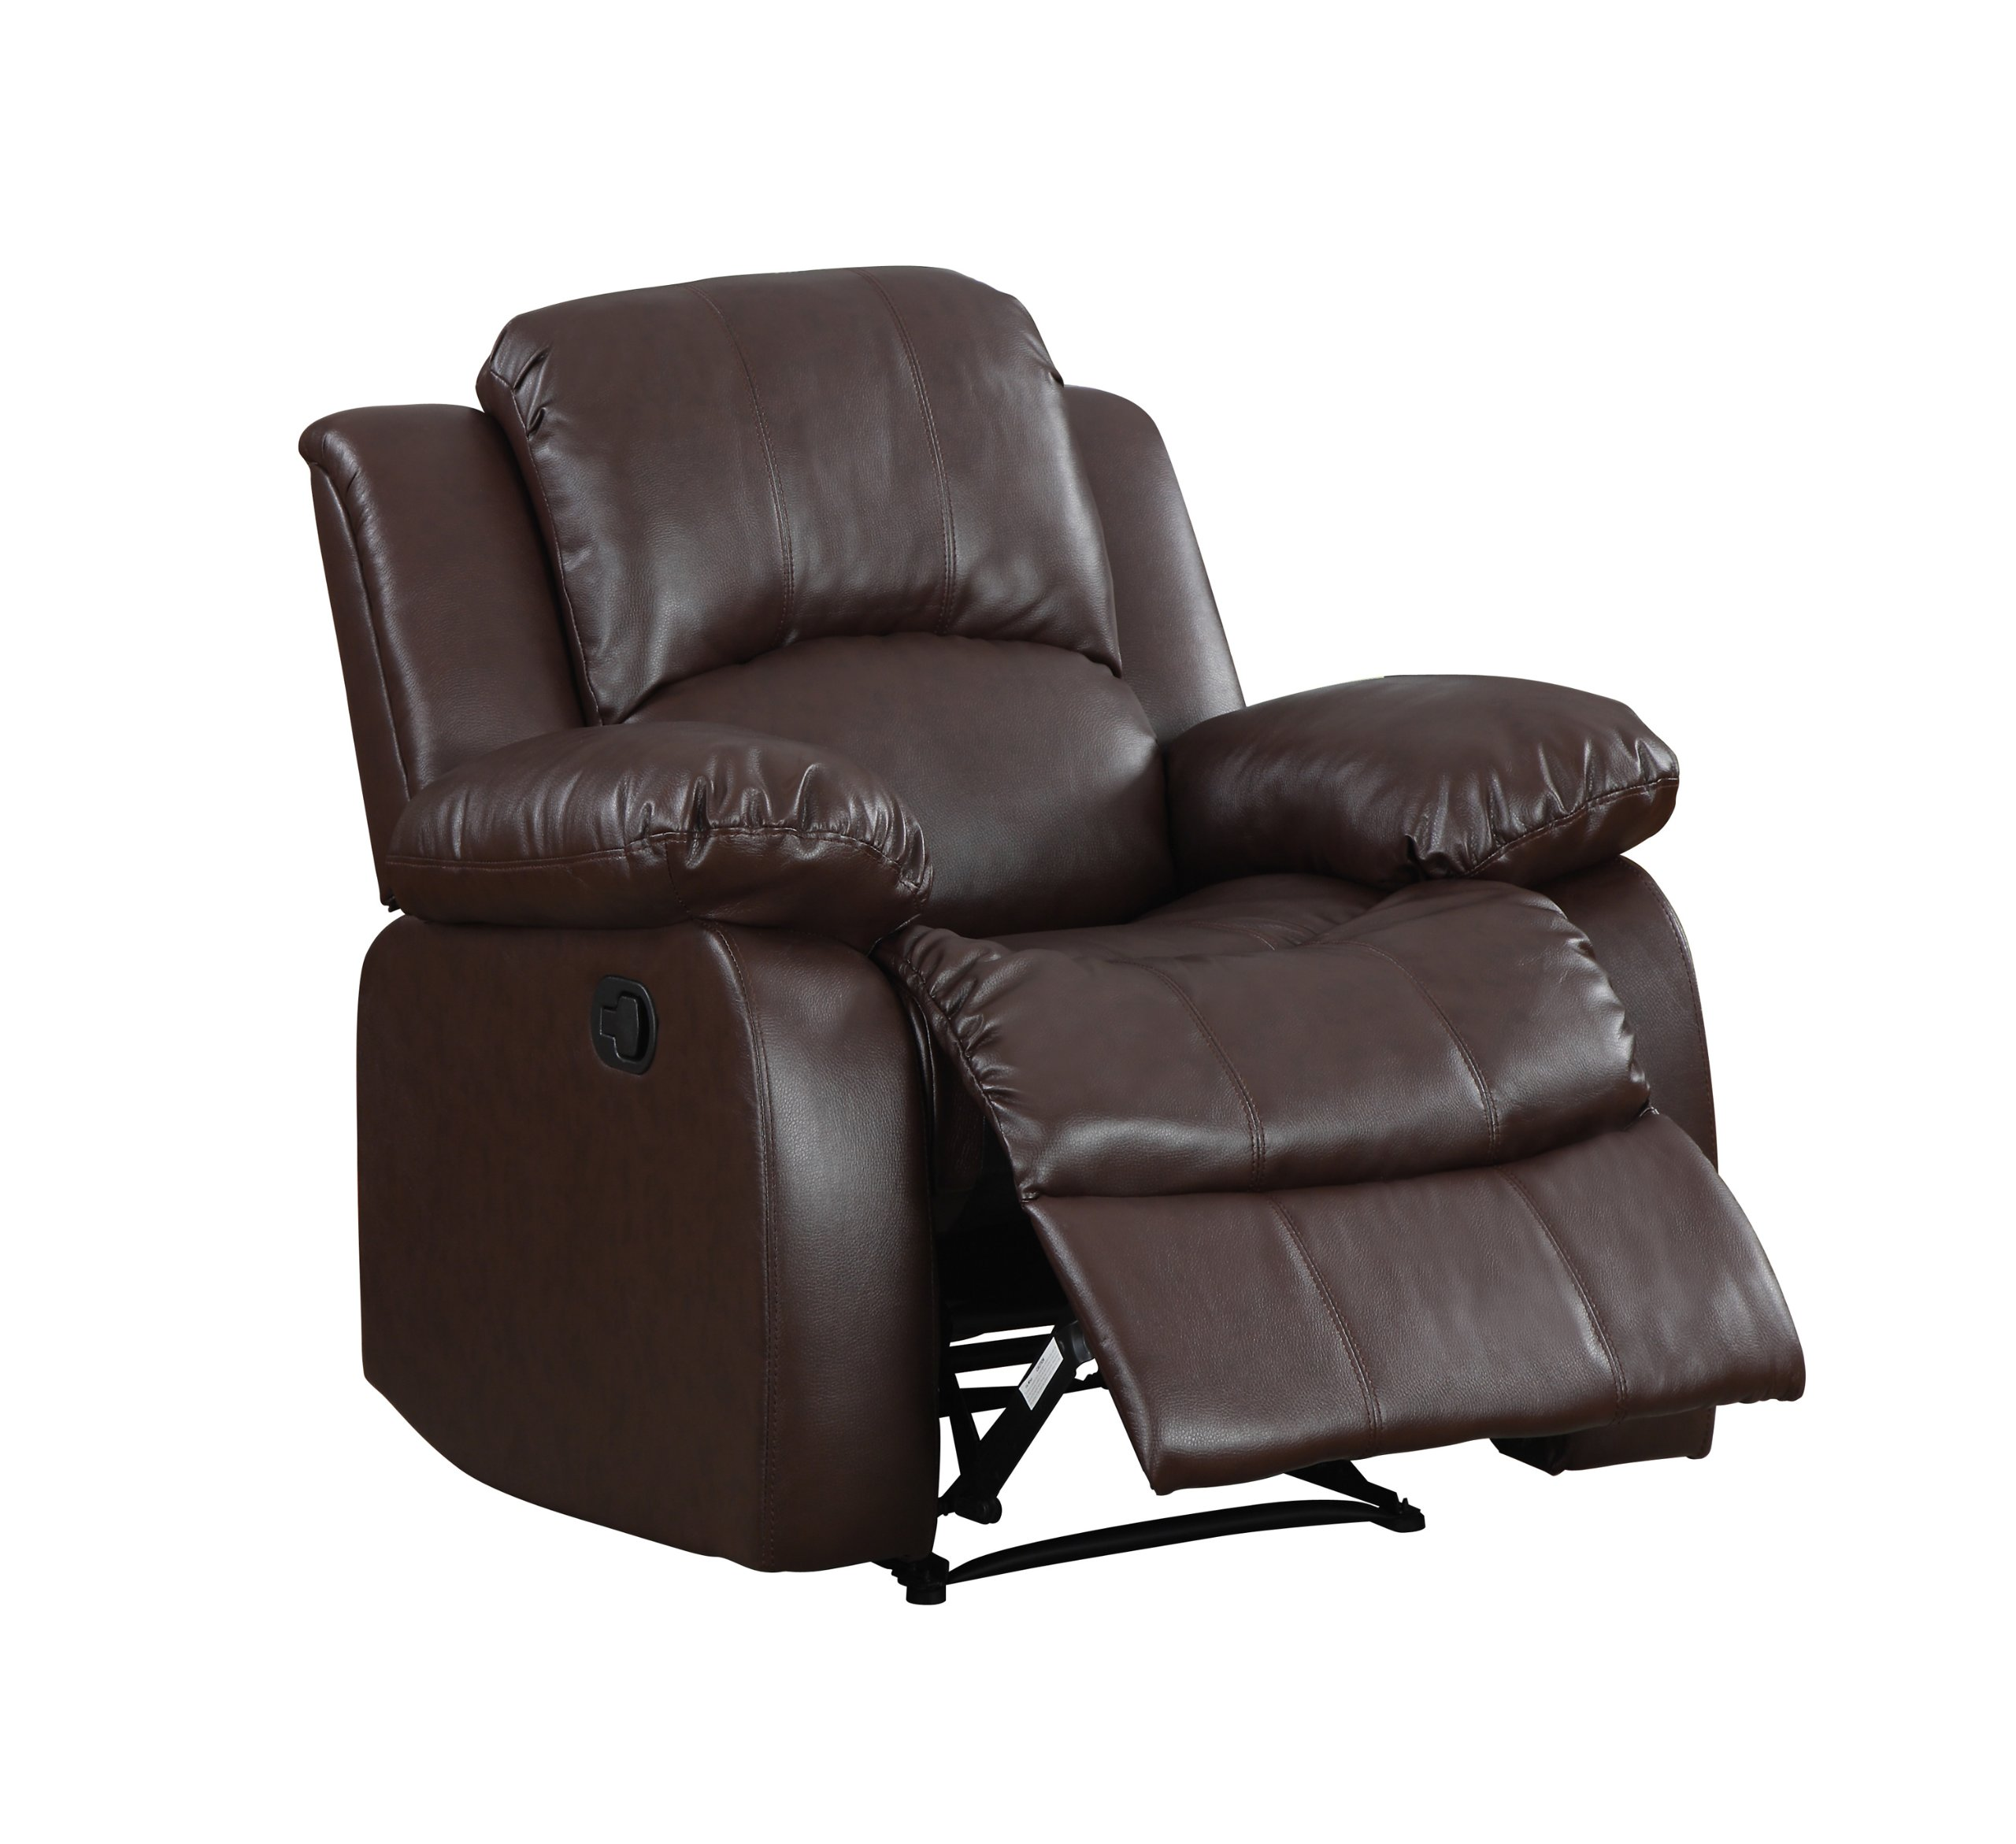 Dropship Home Decor Homelegance 9700brw 1 Upholstered Recliner Chair Warm